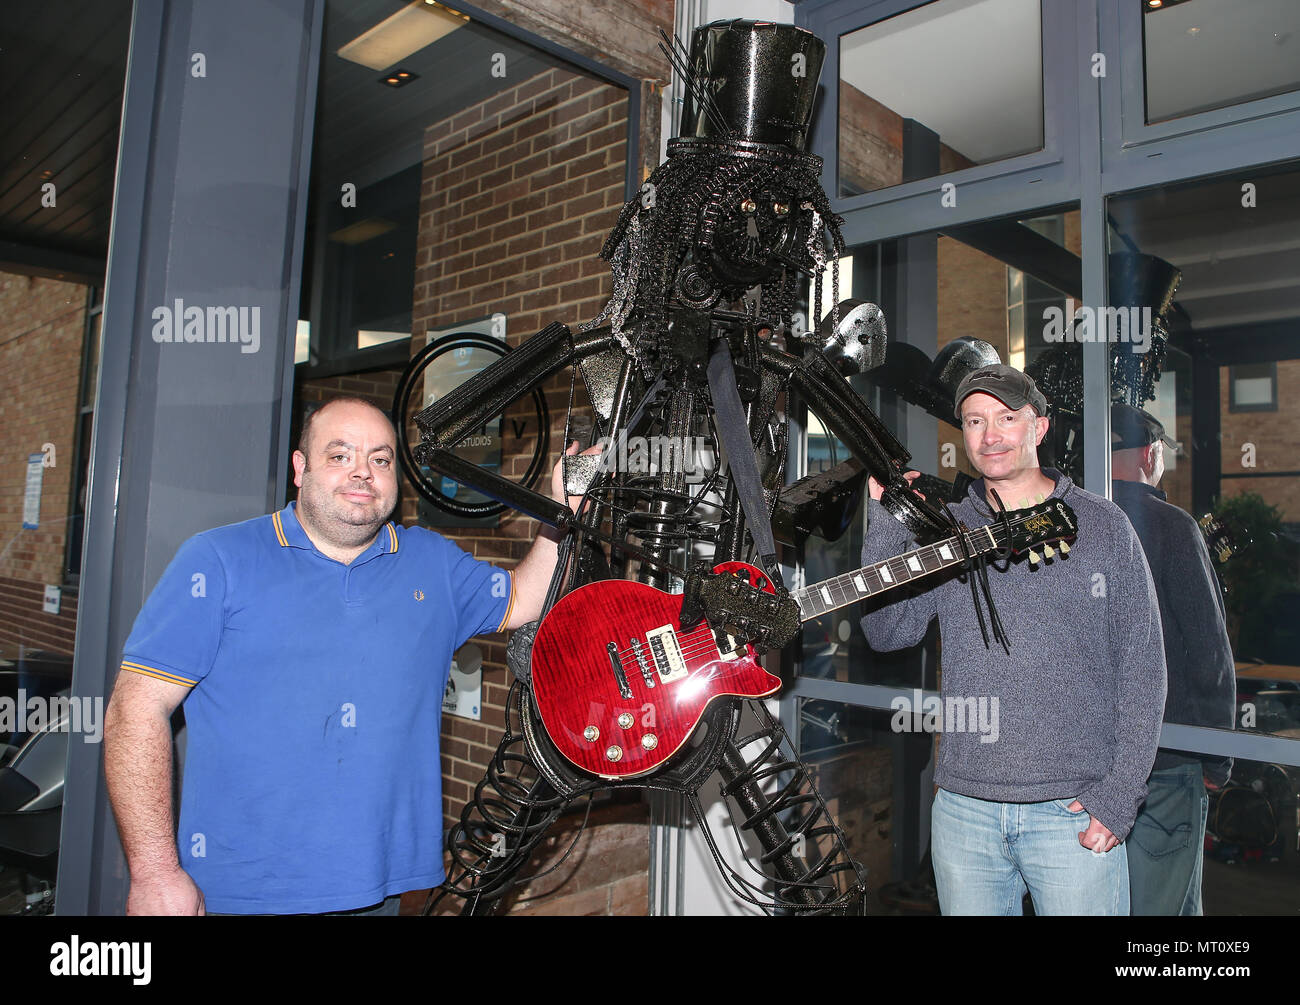 PICTURE SHOWS: Welder/finisher Darren Kenny and artist Simon Weitzman.  .....   A unique sculpture of rock musician Slash is going under the hammer.  The larger-than-life, 7.5 feet tall work has been painstakingly fashioned from recycled car, bike and instrument parts.  Officially signed by Slash in two places, it is the work of artist Simon Weitzman and welder/finisher Darren Kenny, of Heavy Metal Sculptures (https://www.heavymetalsculptures.com/)  It was made to benefit IFAW, the International Fund for Animal Welfare, of which Slash acts as an ambassador, and comes fitted with a Slash signat Stock Photo